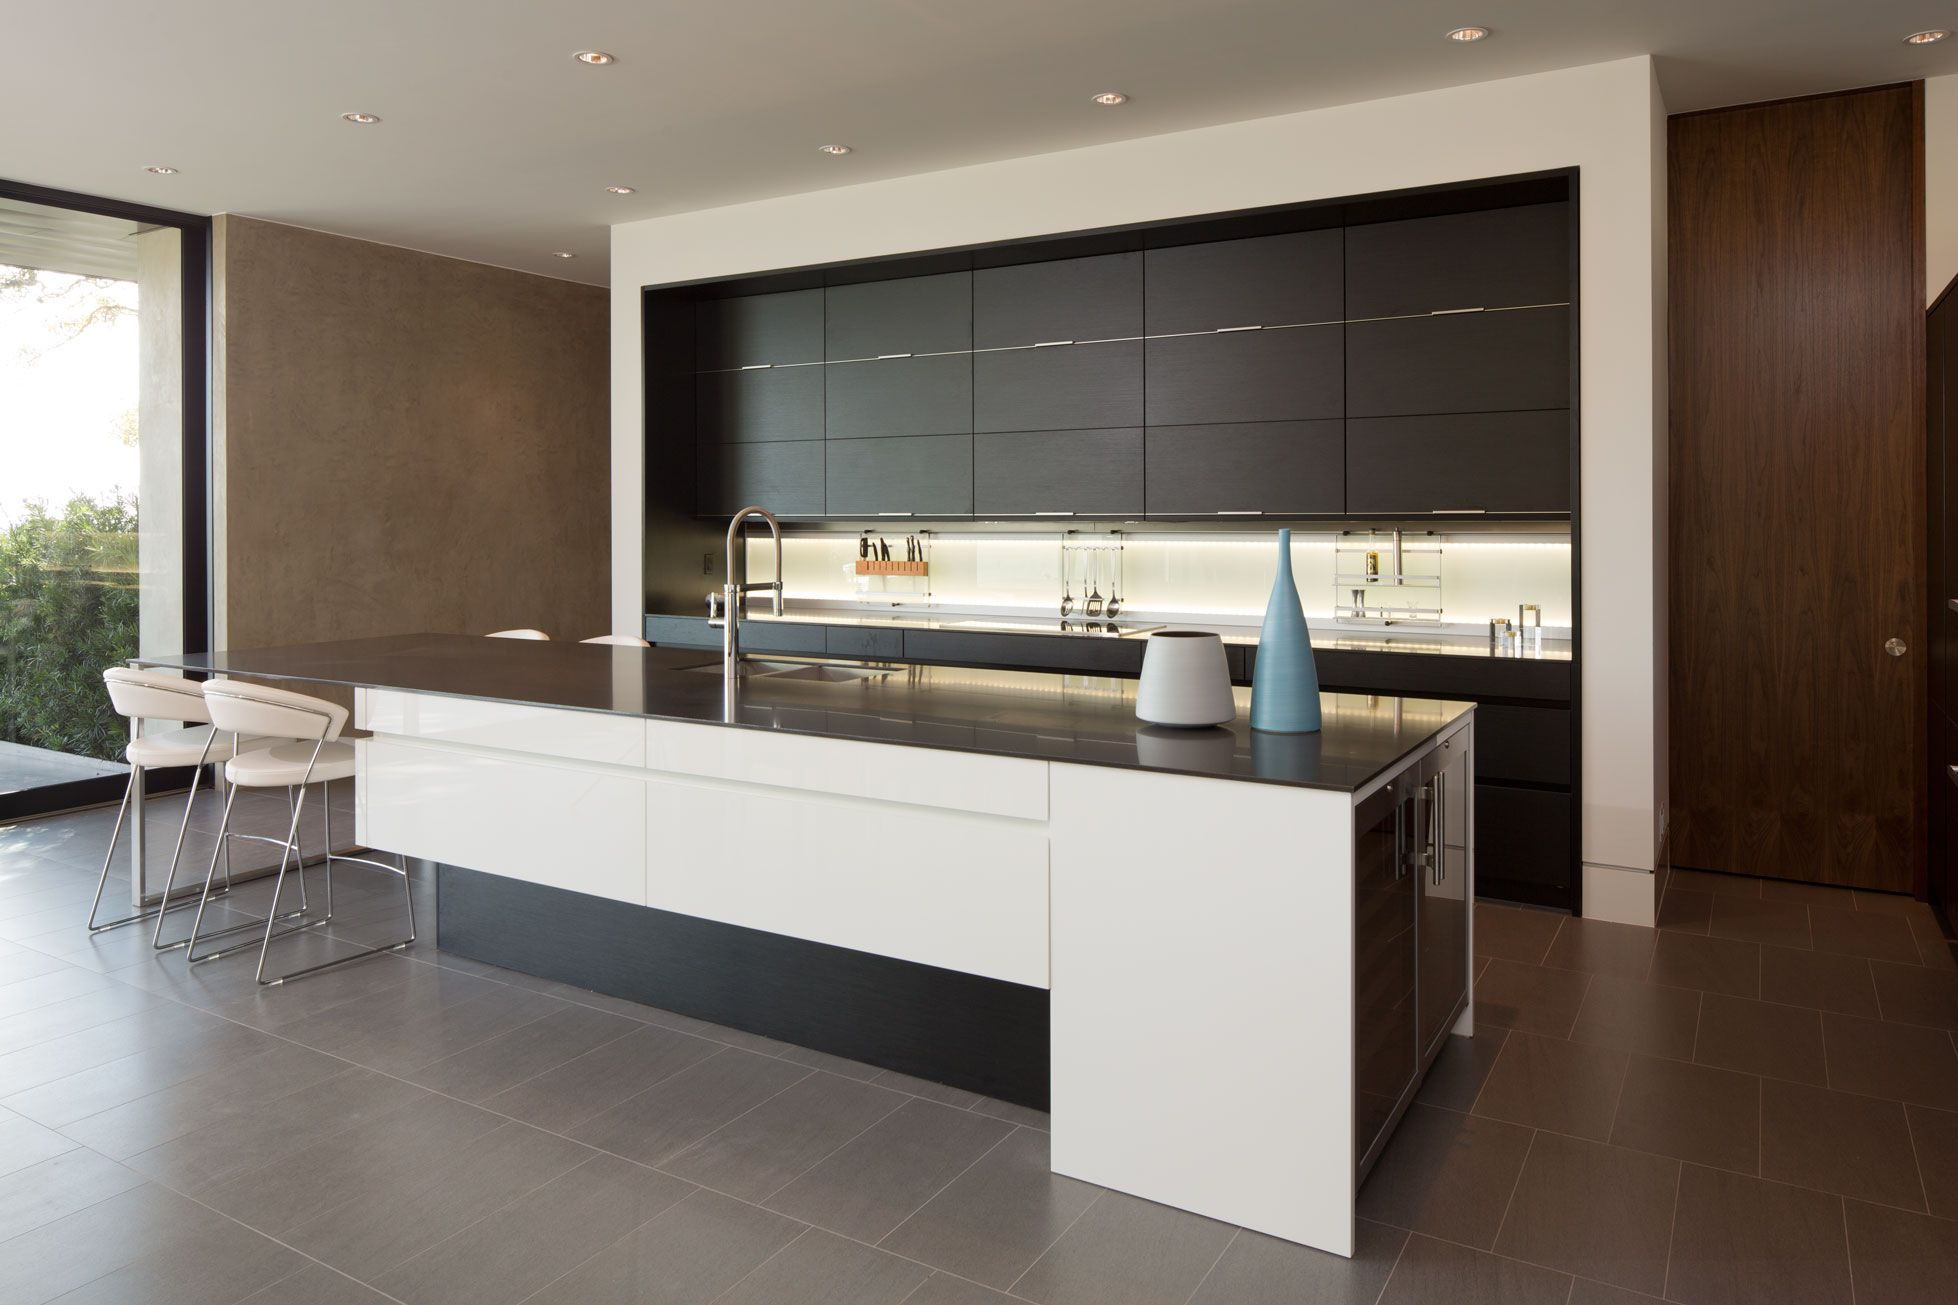 Skyline project austin tx kitchen cabinets by leicht for Kitchen cabinets modern style